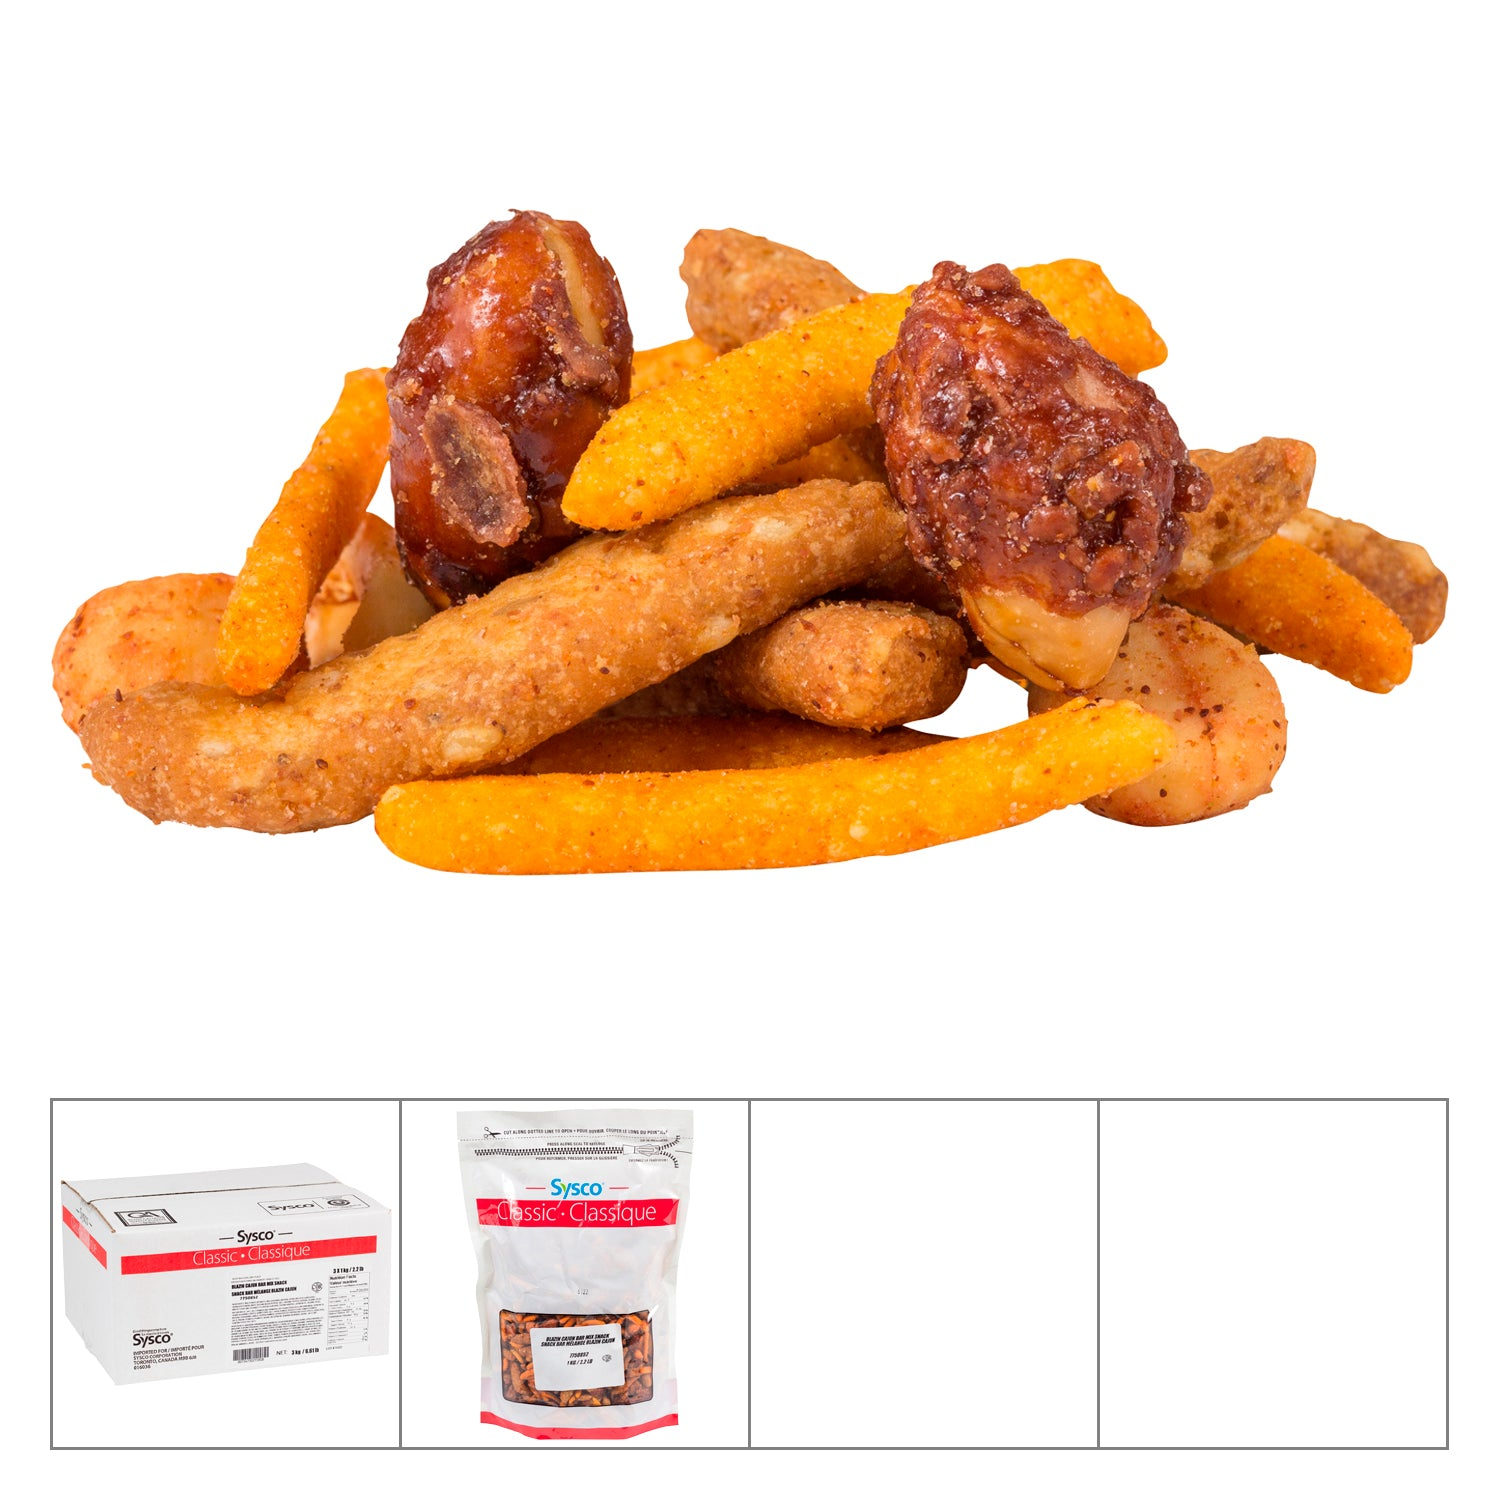 Sysco Classic Cajun Snack Mix 1 kg - 3 Pack [$11.66/kg]